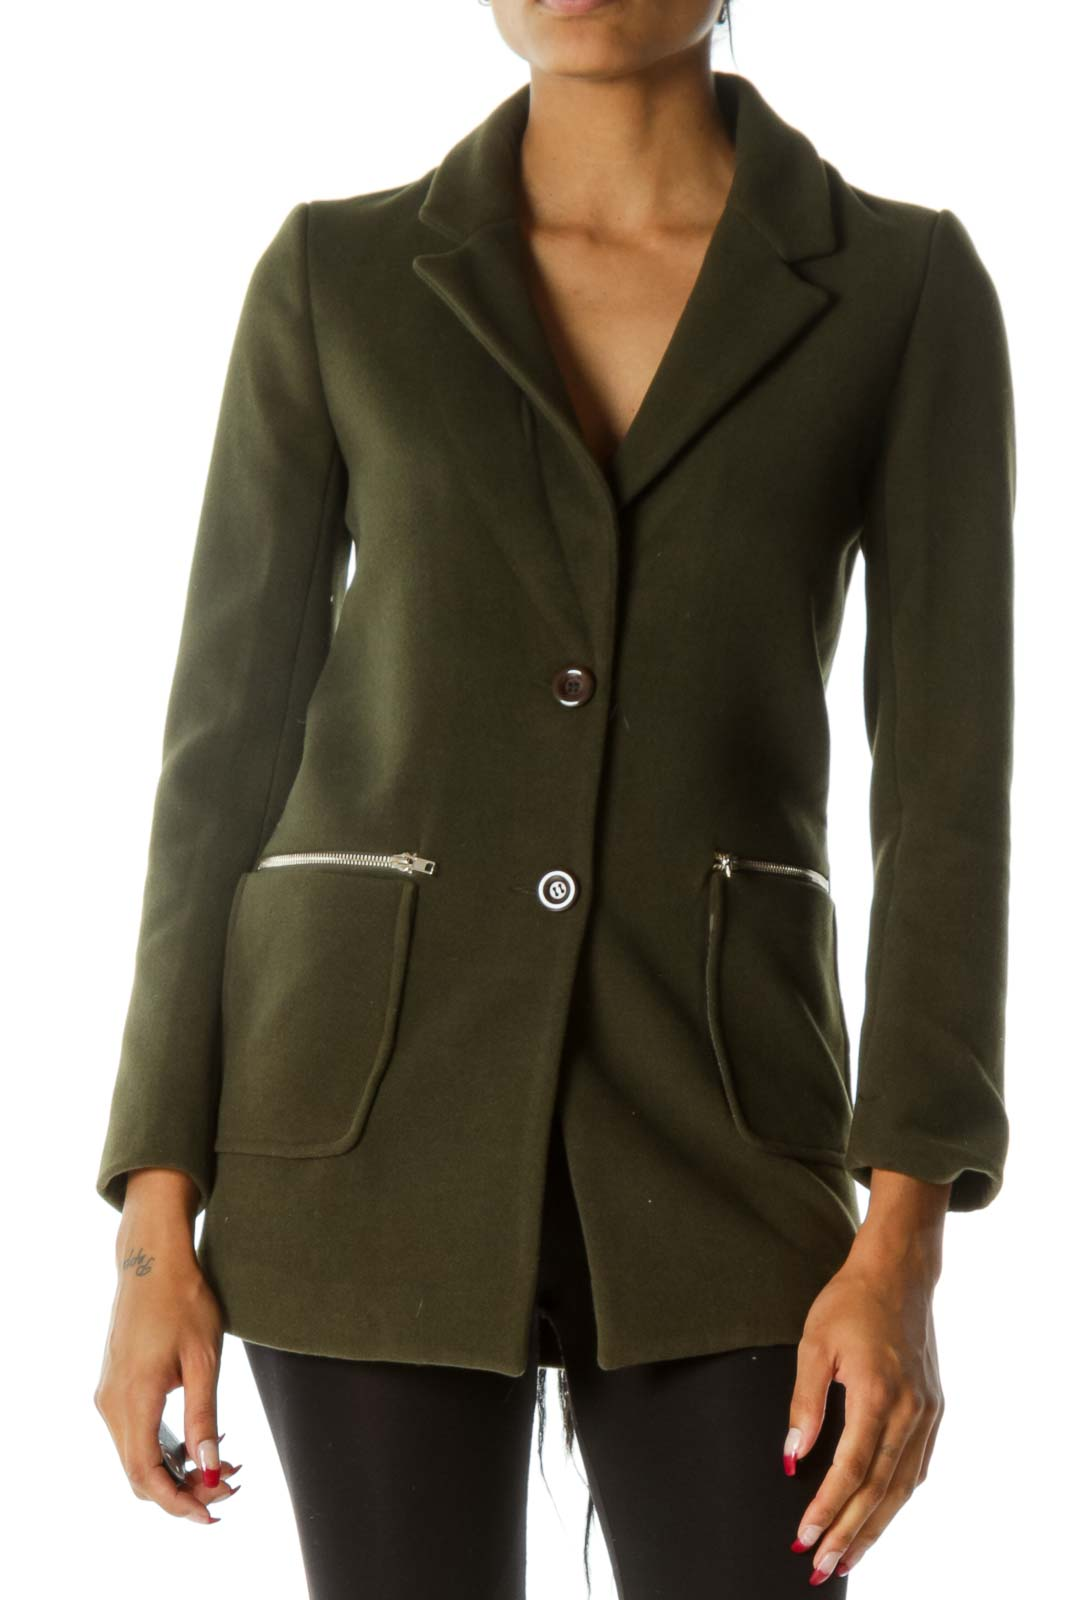 Green V-Neck Zippers Pocketed Buttoned Long Sleeve Coat Front